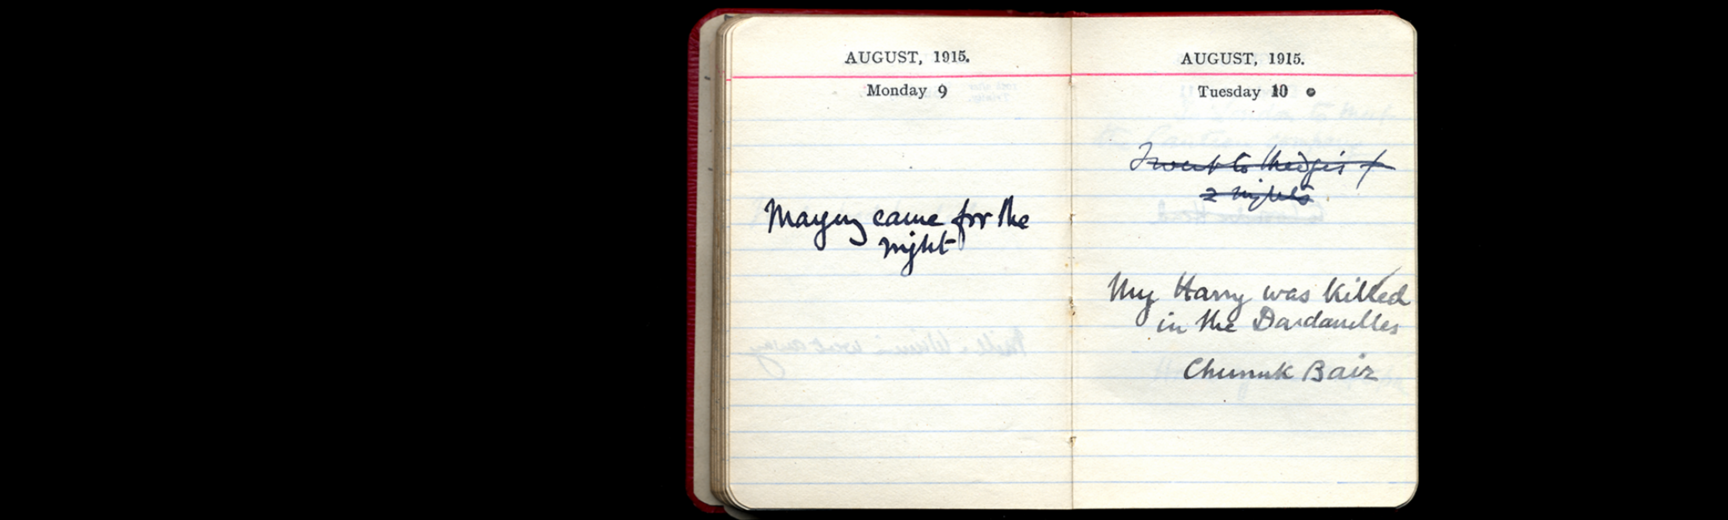 Amabel Moseley's Collins pocket diary England